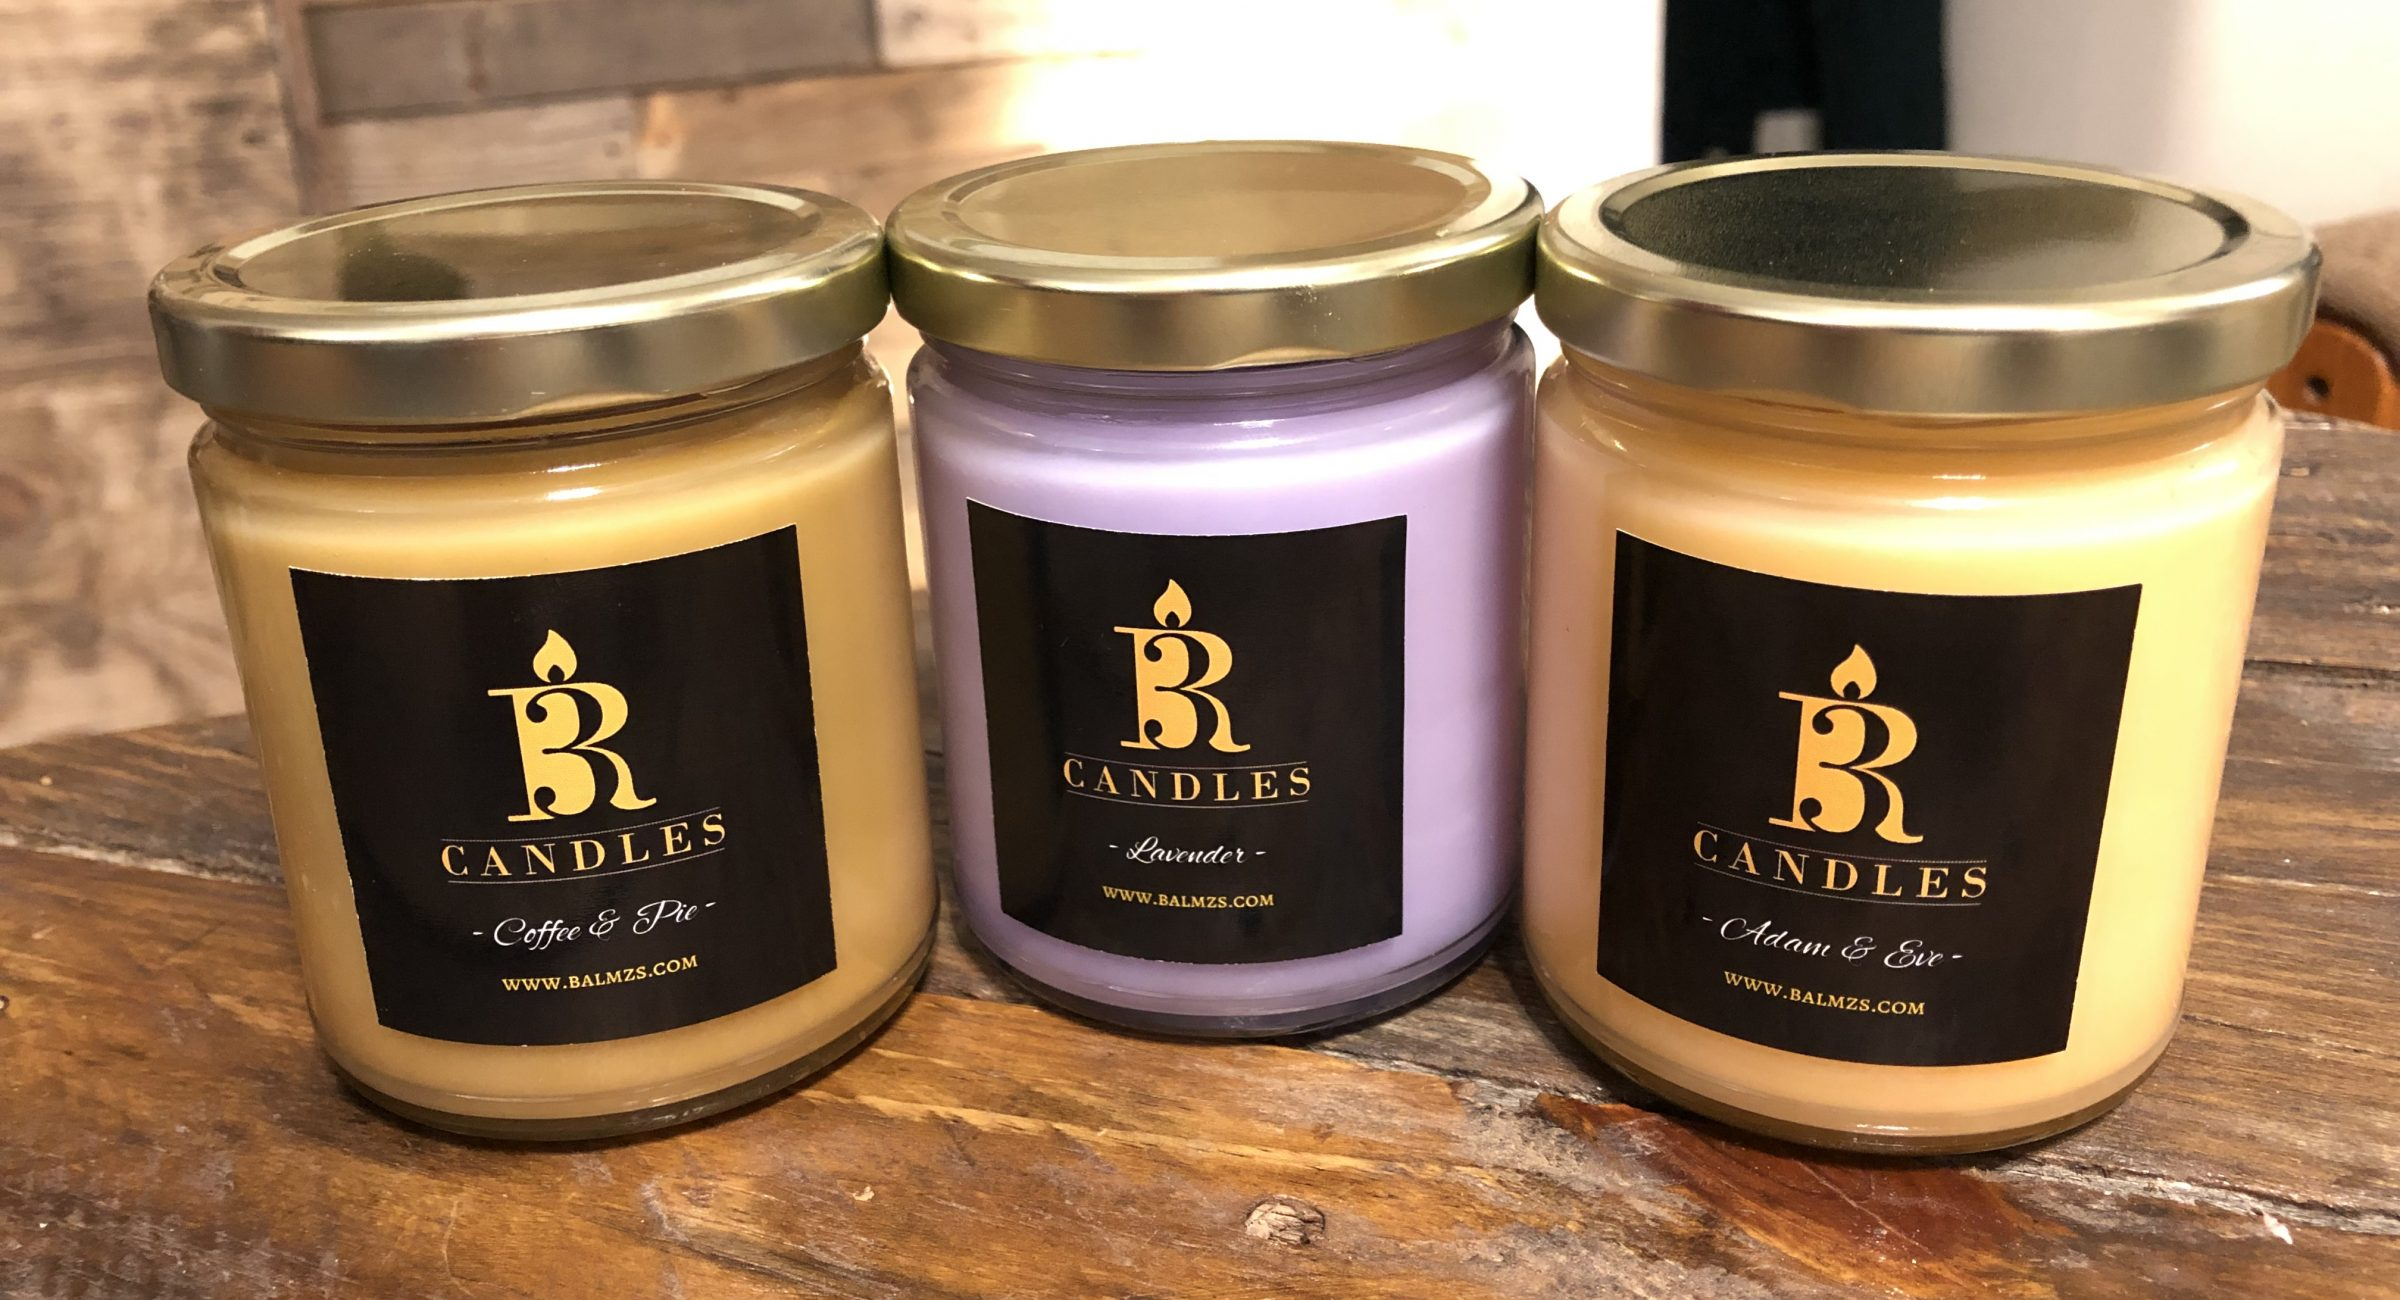 3R Candles